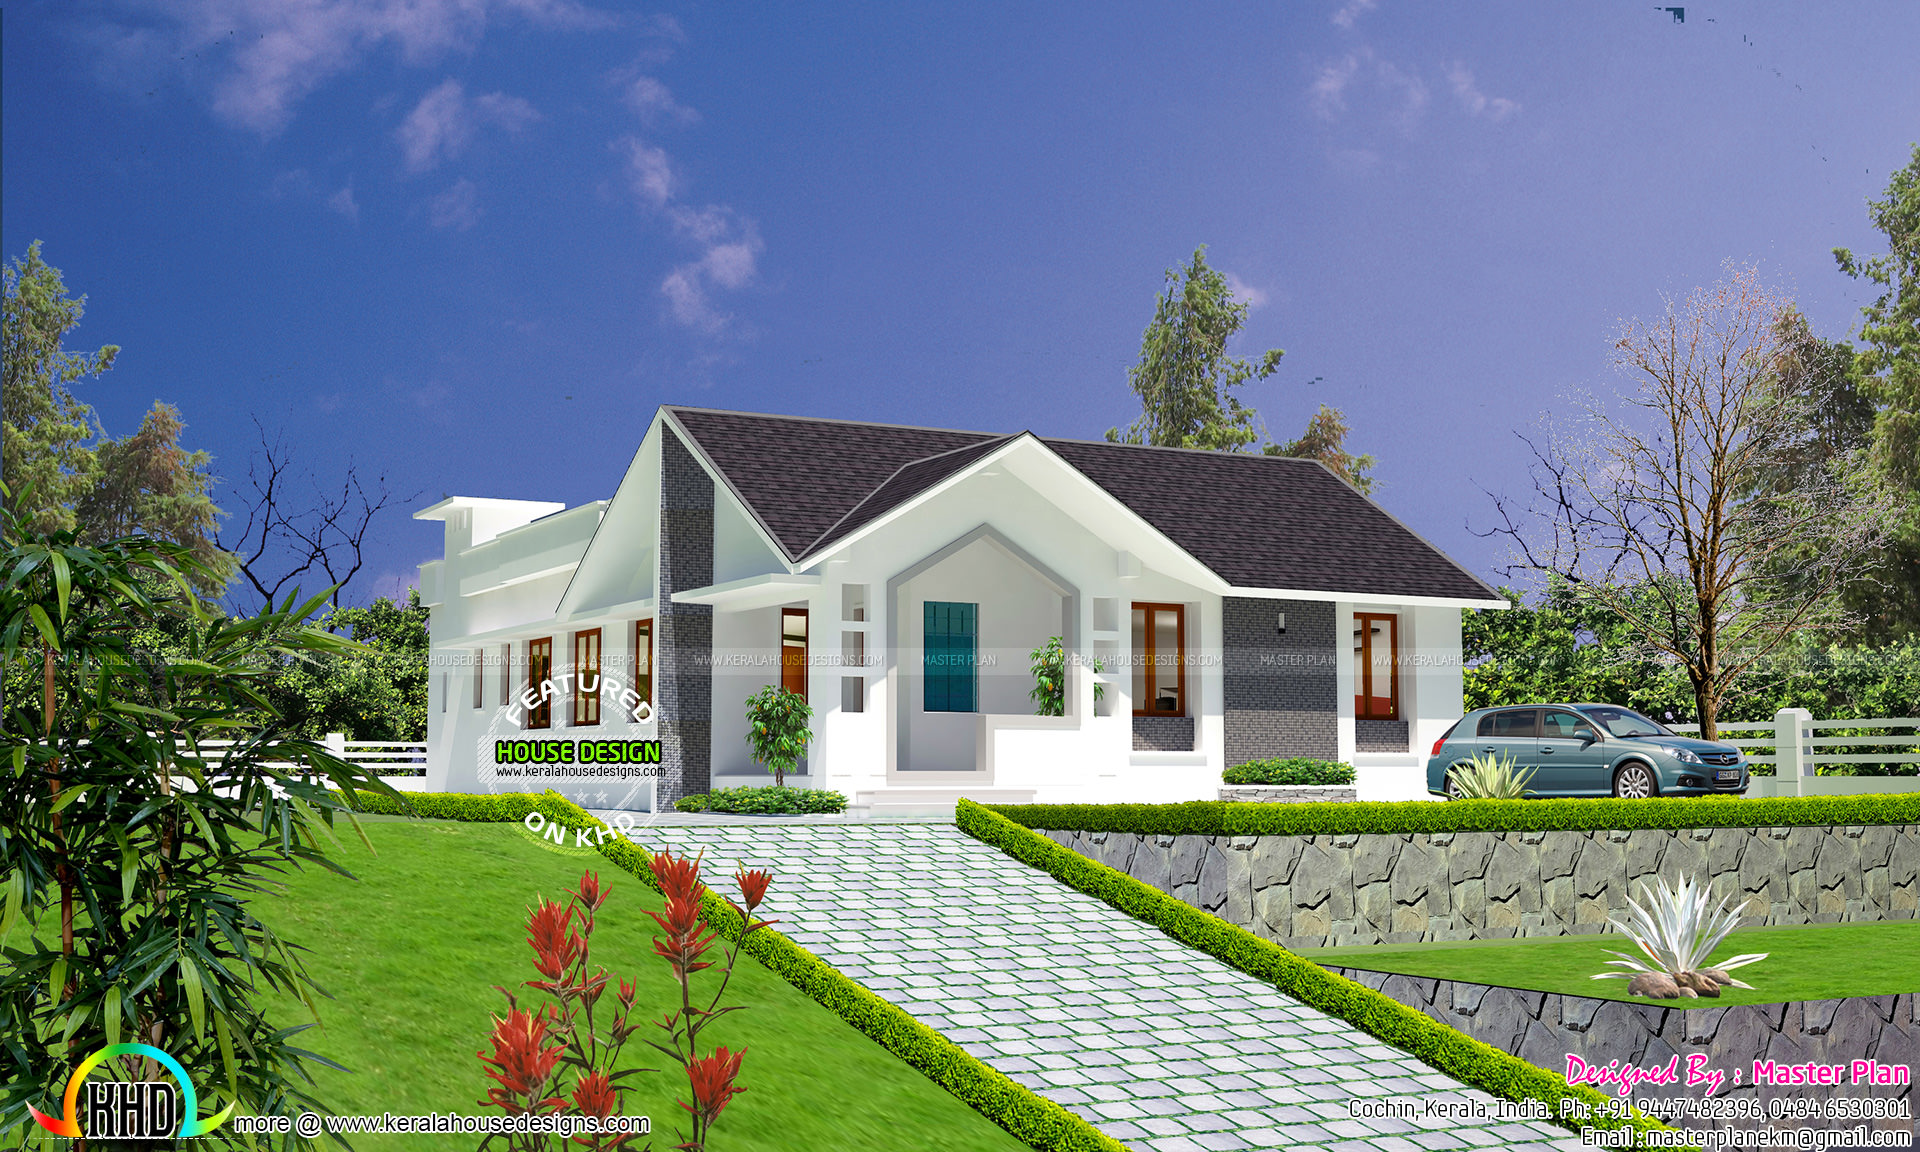 Very cute home hill station house kerala home design and for Photos of cute houses